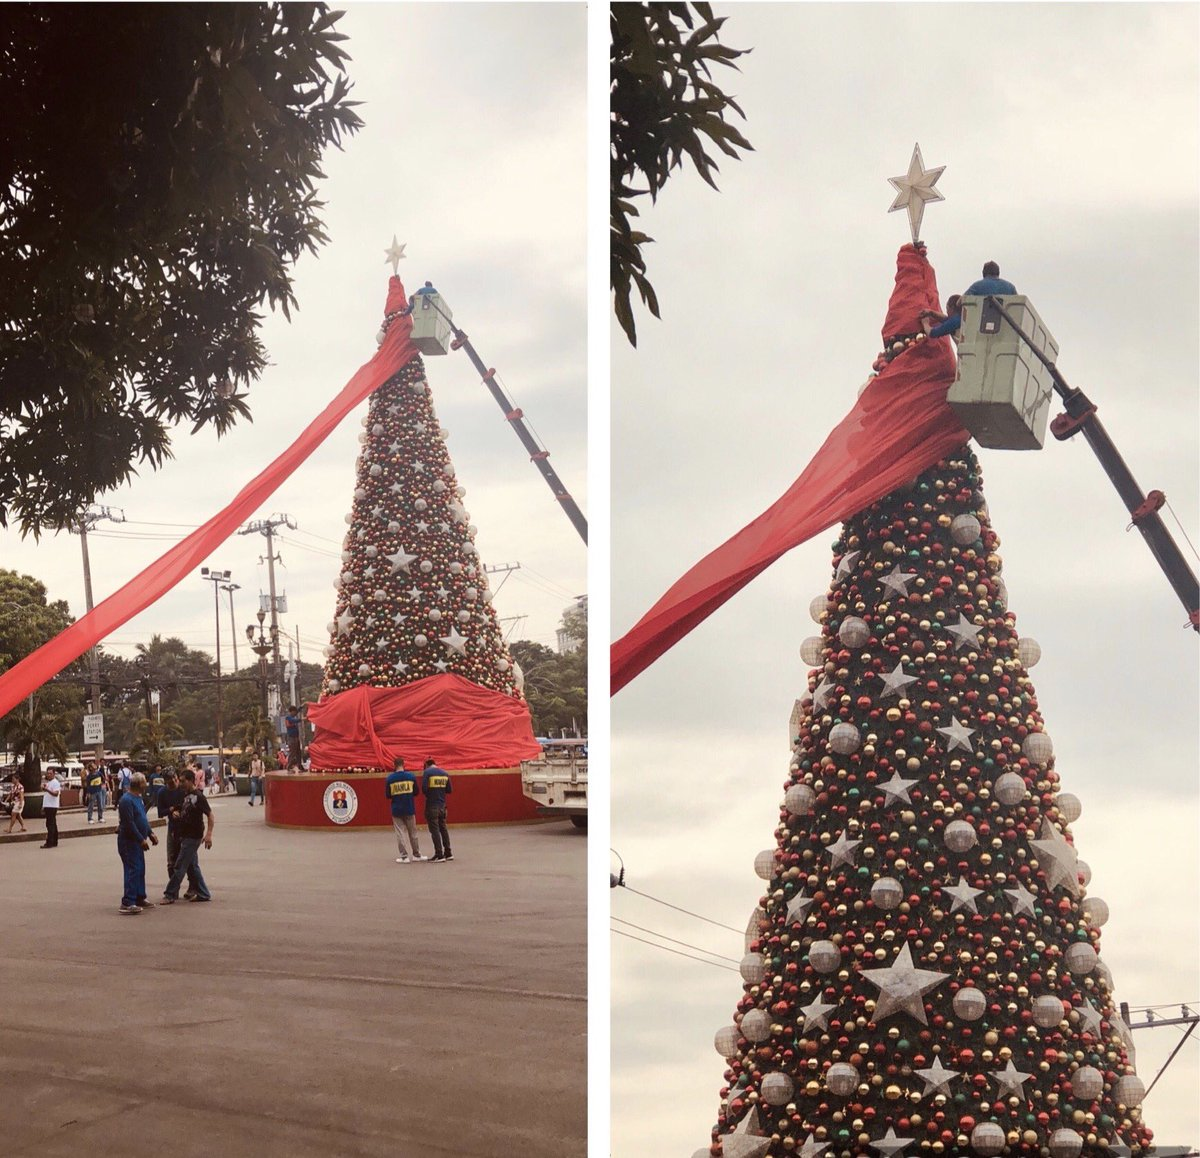 Manila LGU and Engineering Department wraps the Christmas tree display near the Bonifacio shrine with a big red cloth in preparation for Typhoon #TisoyPH | via @ZyannAmbrosio